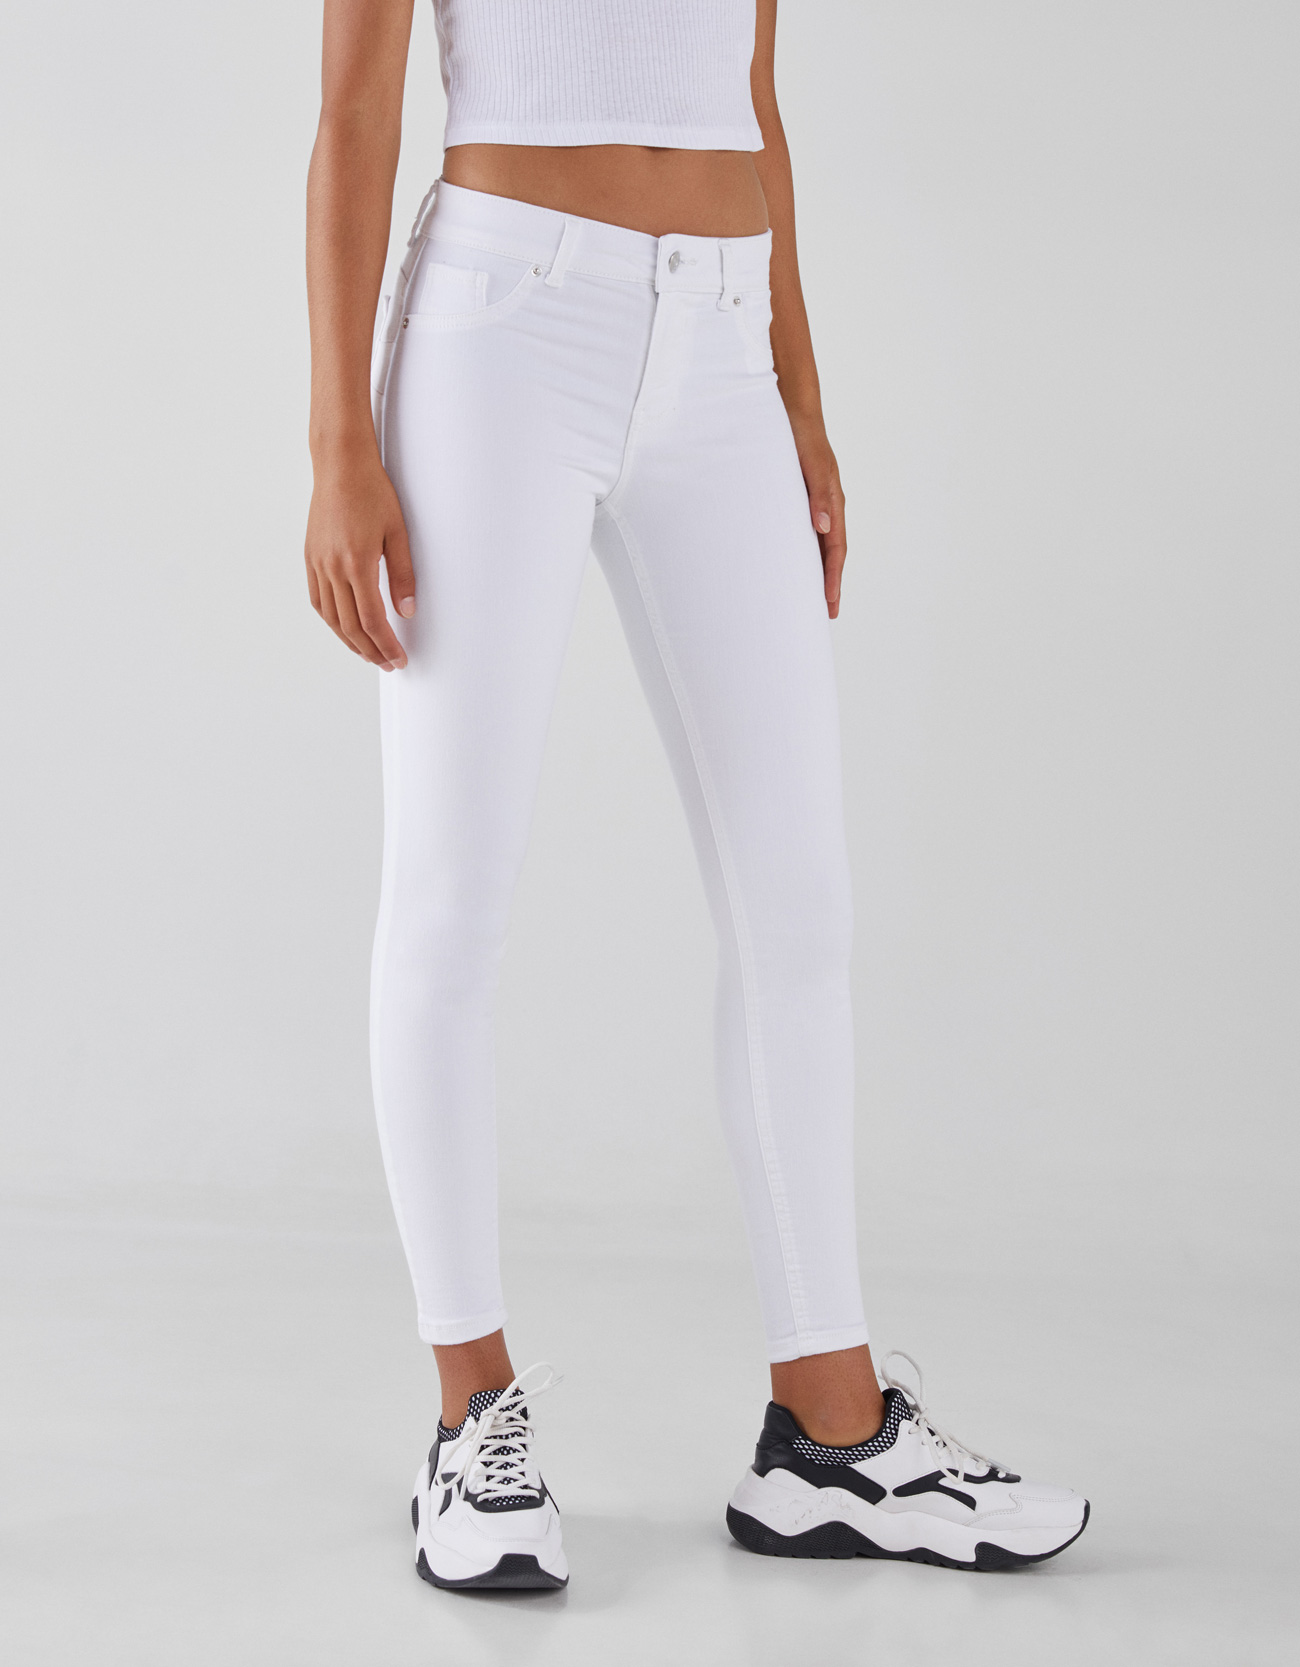 0ac43ee835373 Push Up Low Rise Jeans - Push-up - Bershka United States